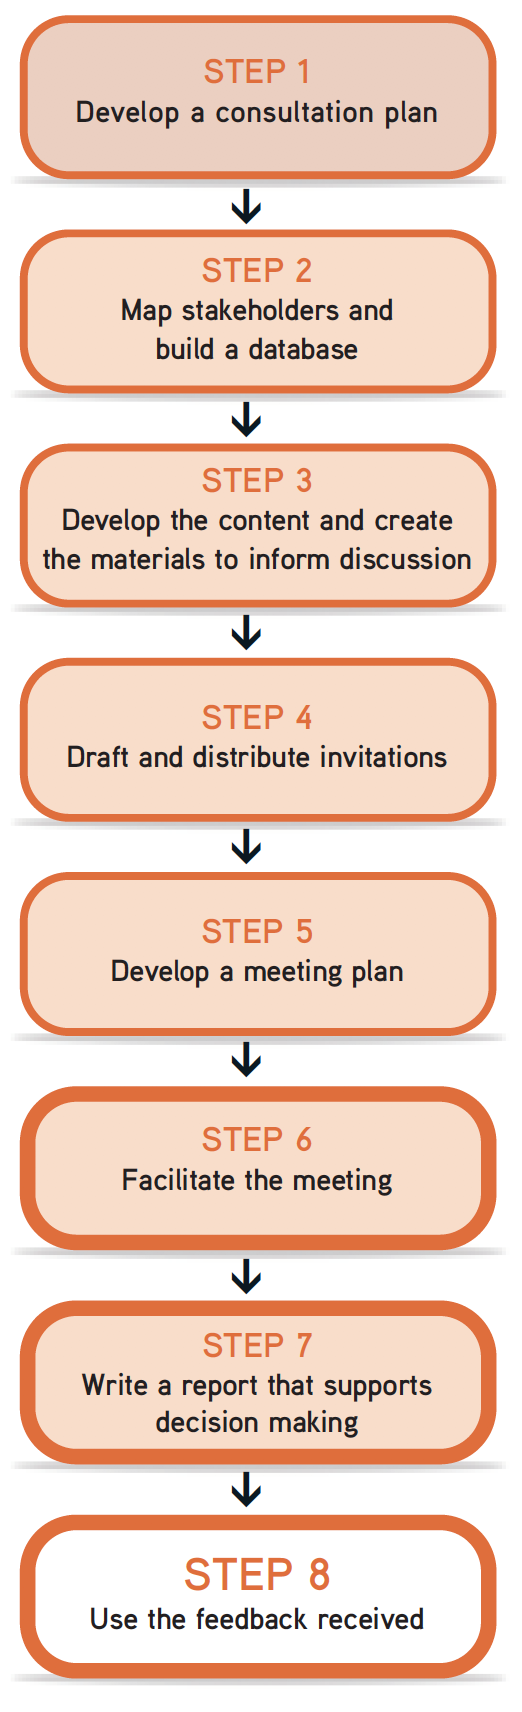 "Picture of steps flow chart, with Step 8 ""use the feedback received"" highlighted."